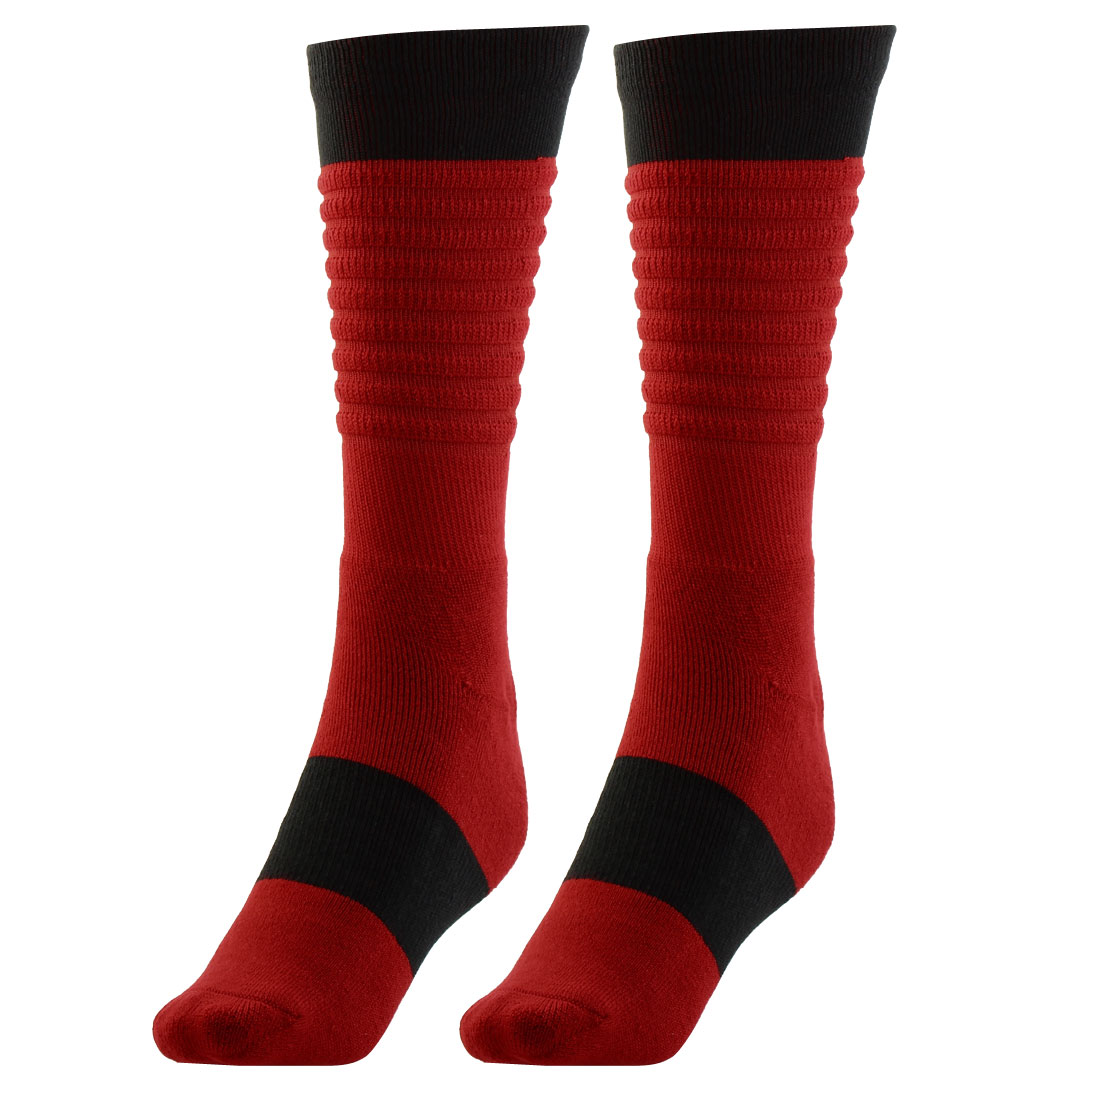 Outdoor Activities Basketball Multi Performance Running Exercise Sports Trekking Hiking Socks Red Pair